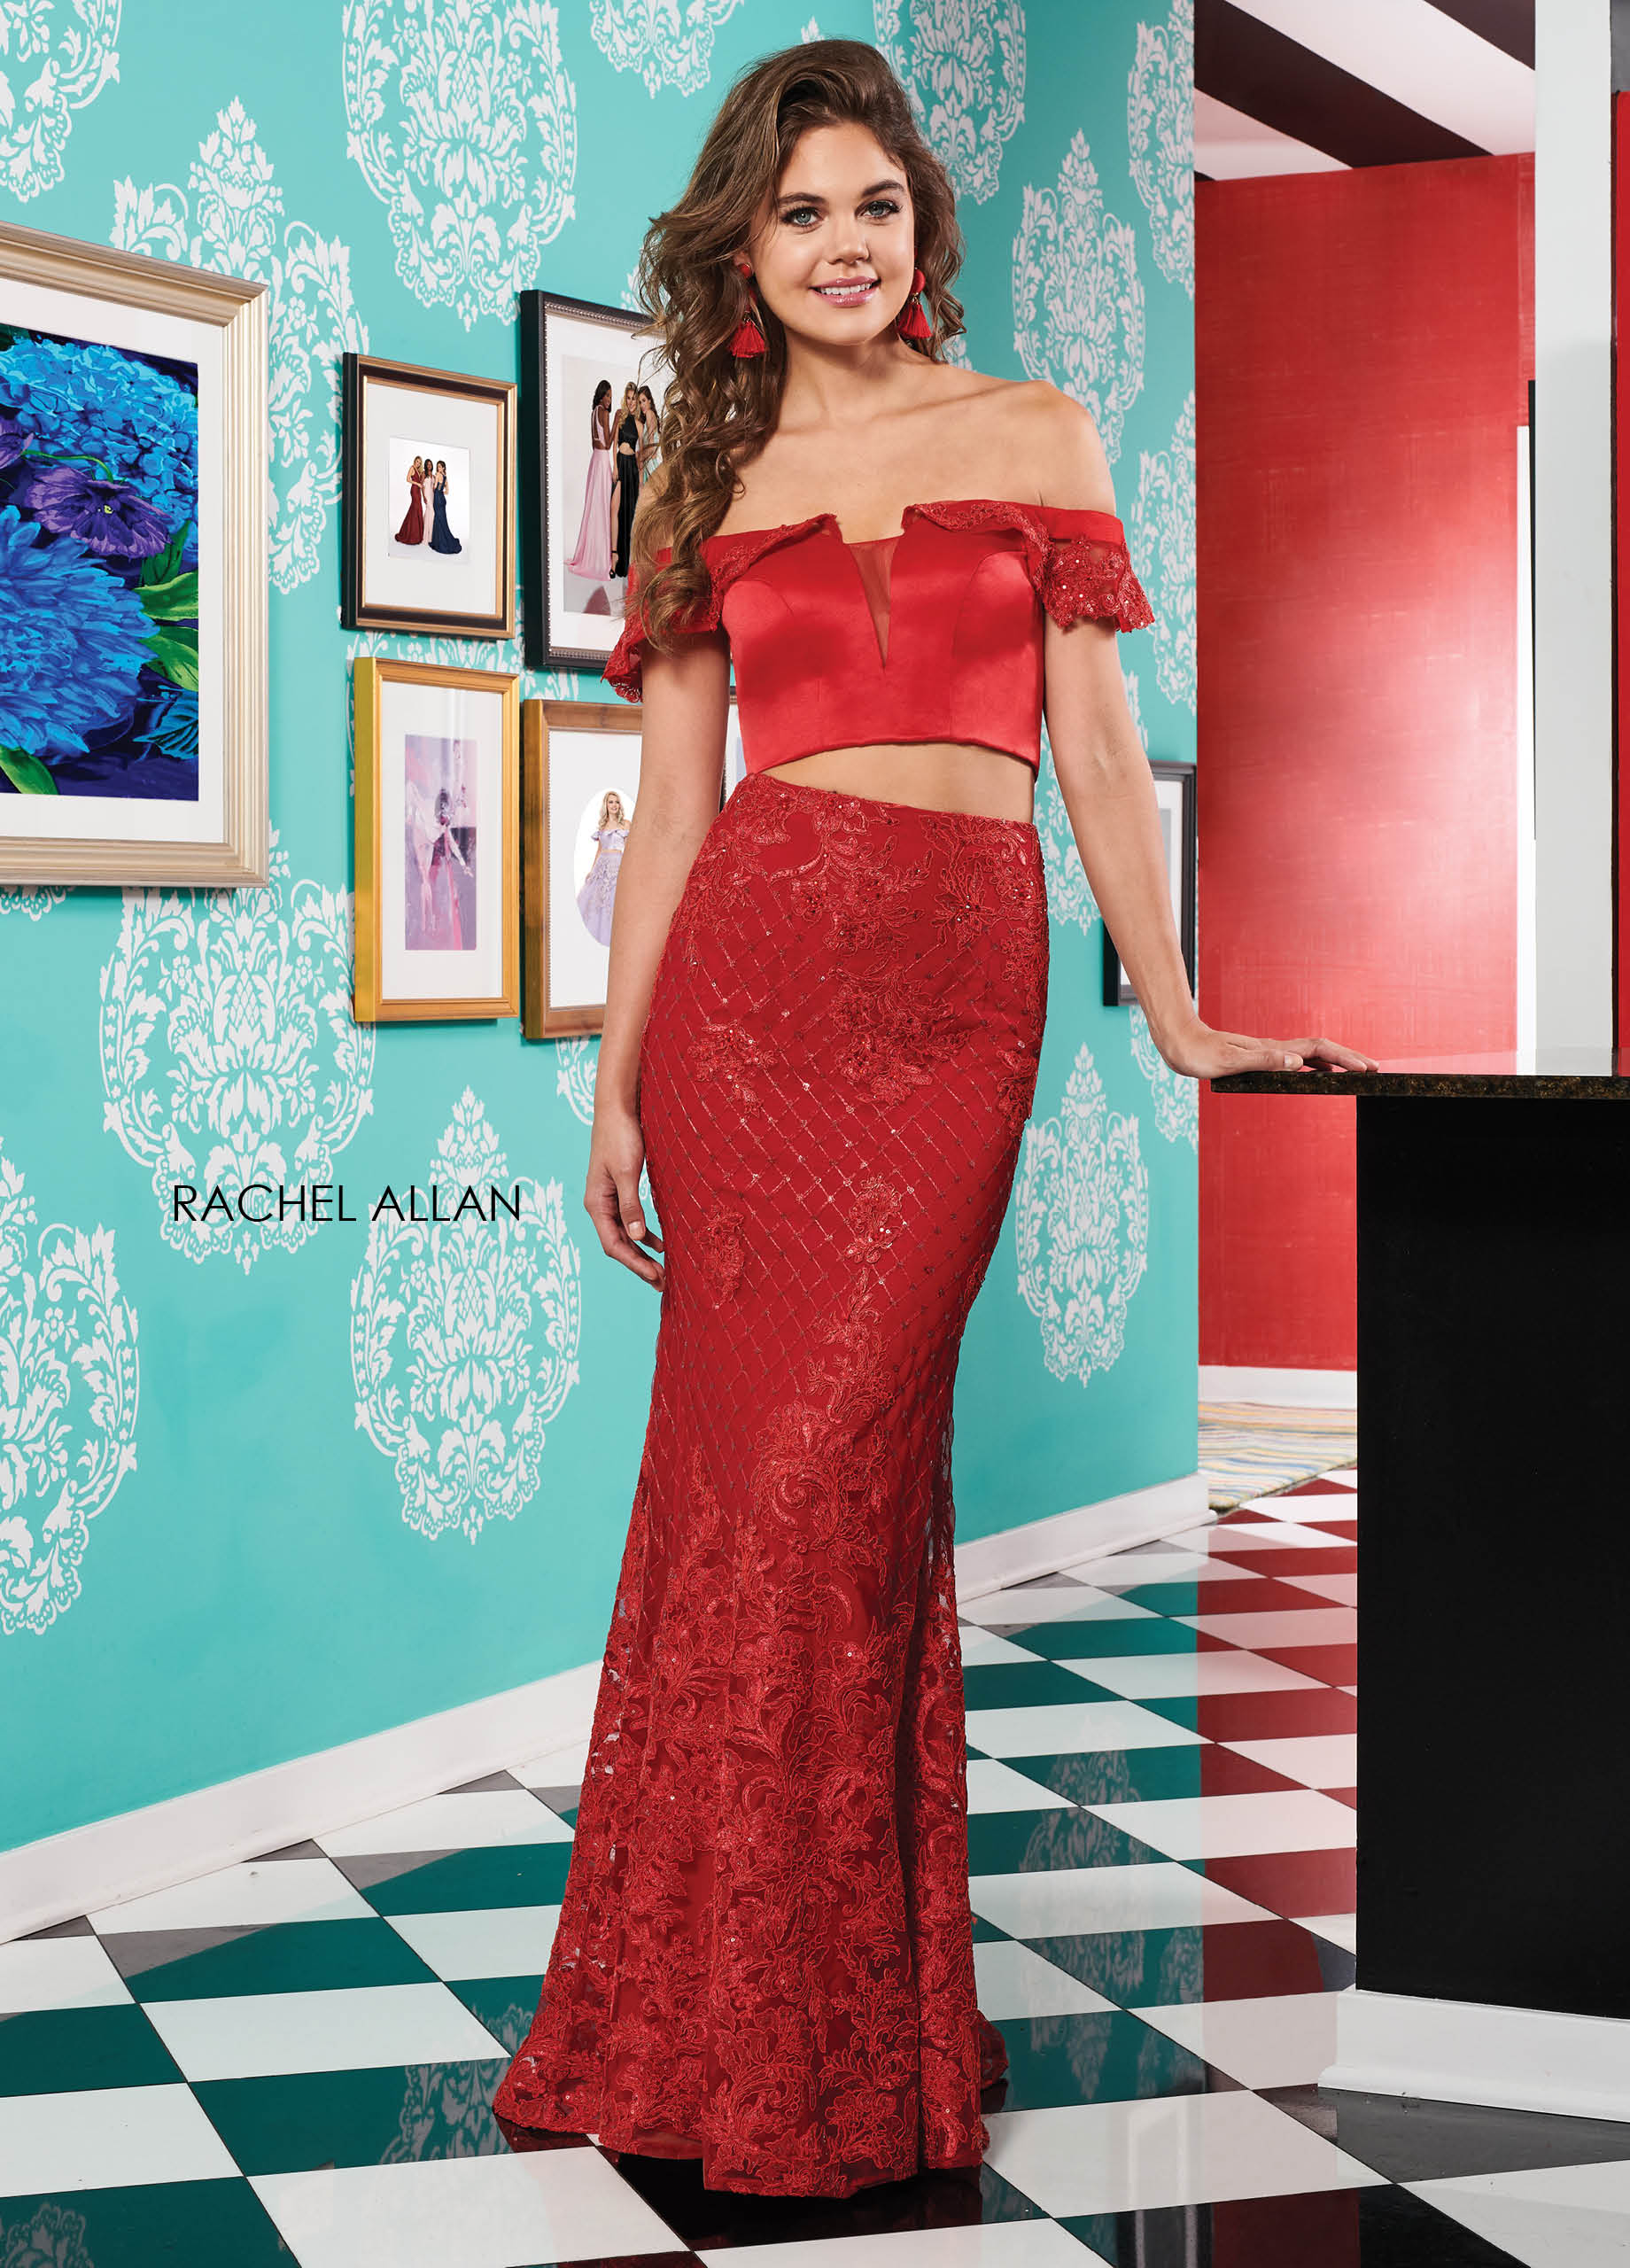 Off The Shoulder Fit & Flare Prom Dresses in Red Color